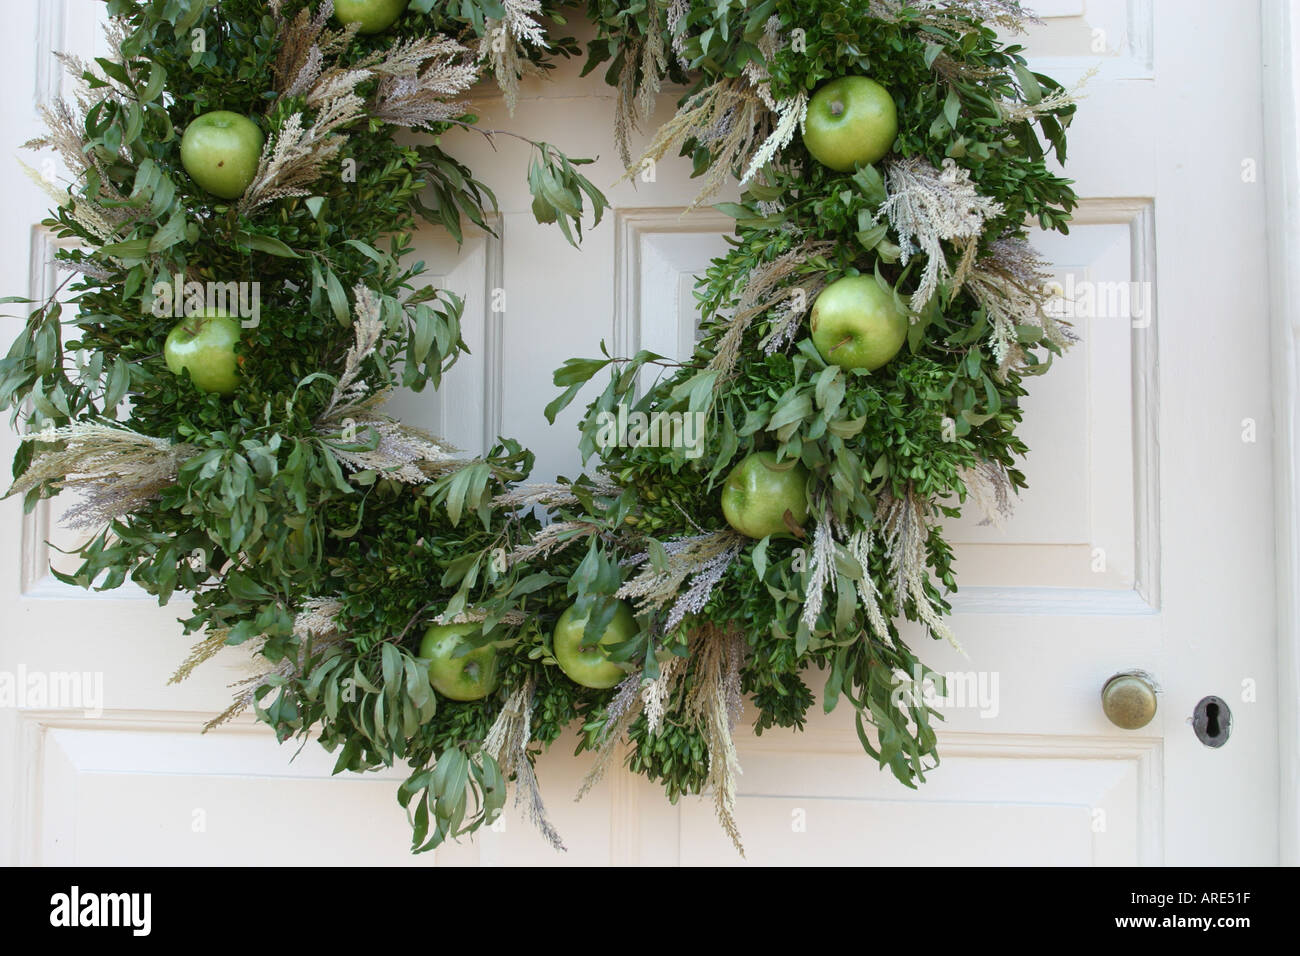 virginia colonial national historical park yorktown main street nelson house colonial christmas decor front door